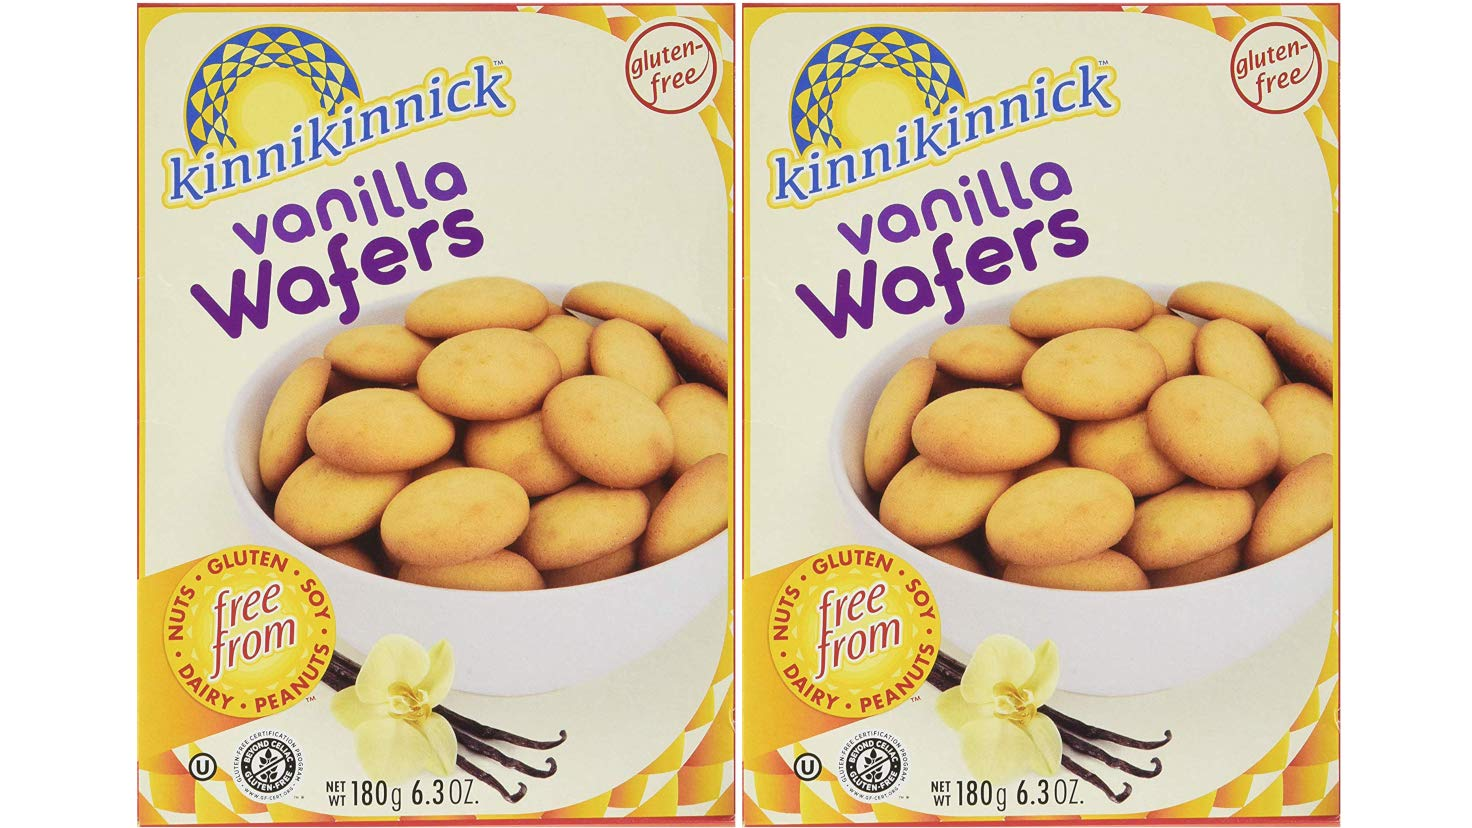 Kinnikinnick Gluten-Free Vanilla Wafer Cookies 12.7 Ounces Delicious Dairy-Free, Soy-Free, Nut-Free, Gluten-Free Snacks (Two 180G Boxes)